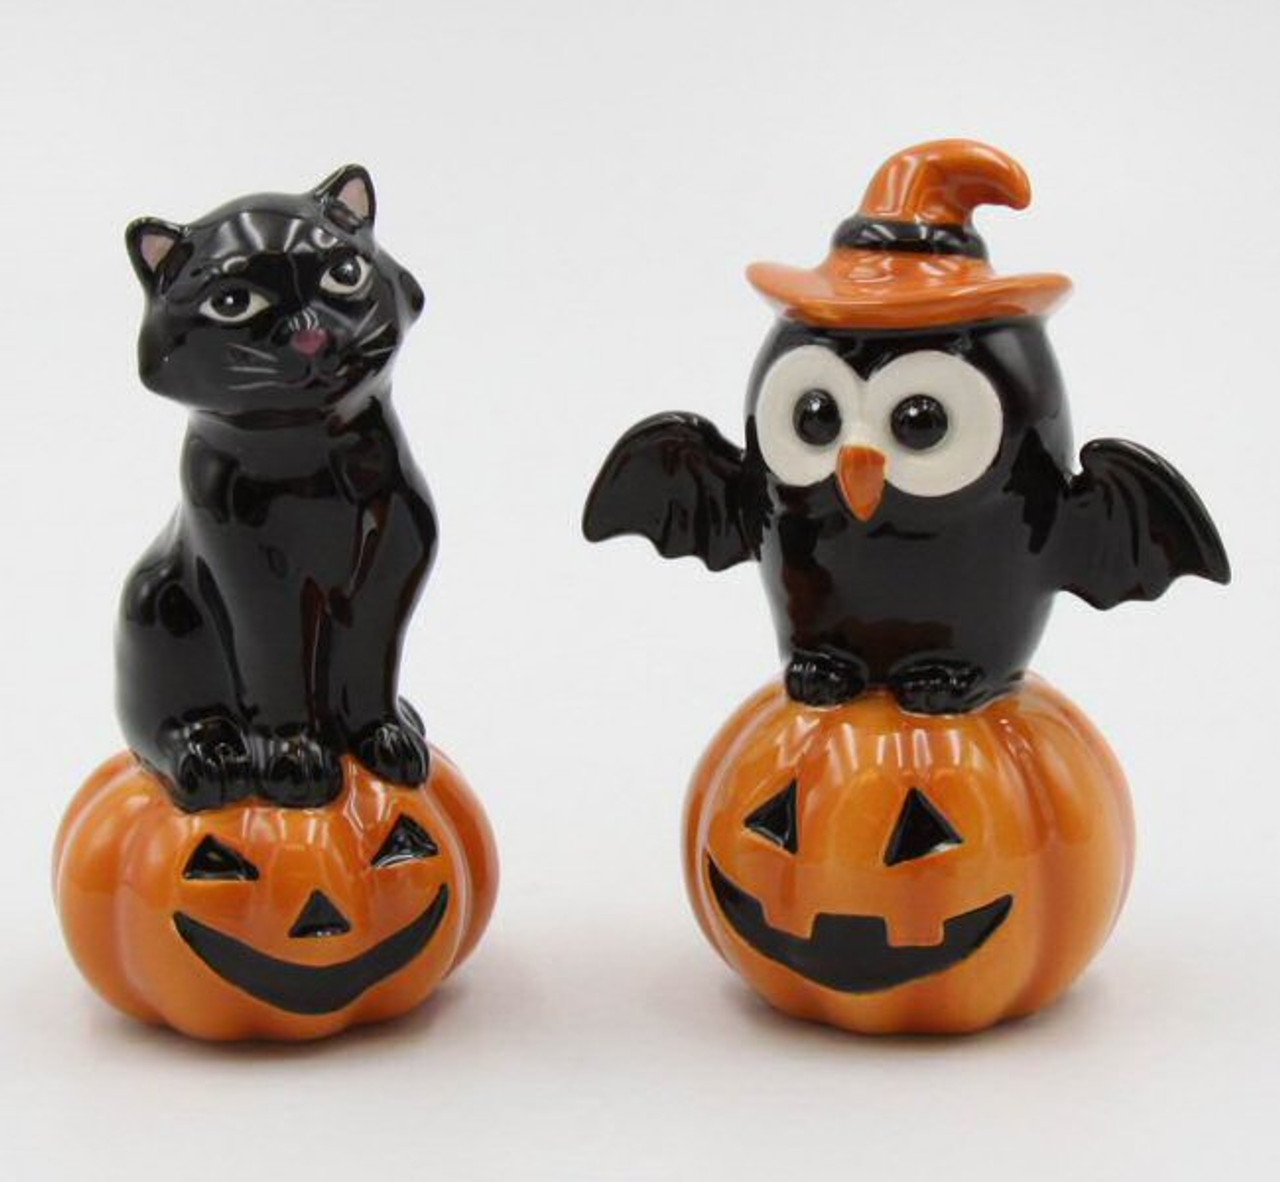 Owl Bird And Black Cat On Pumpkin Porcelain Salt And Pepper Shakers Set Of 4 Tableware Cosmos